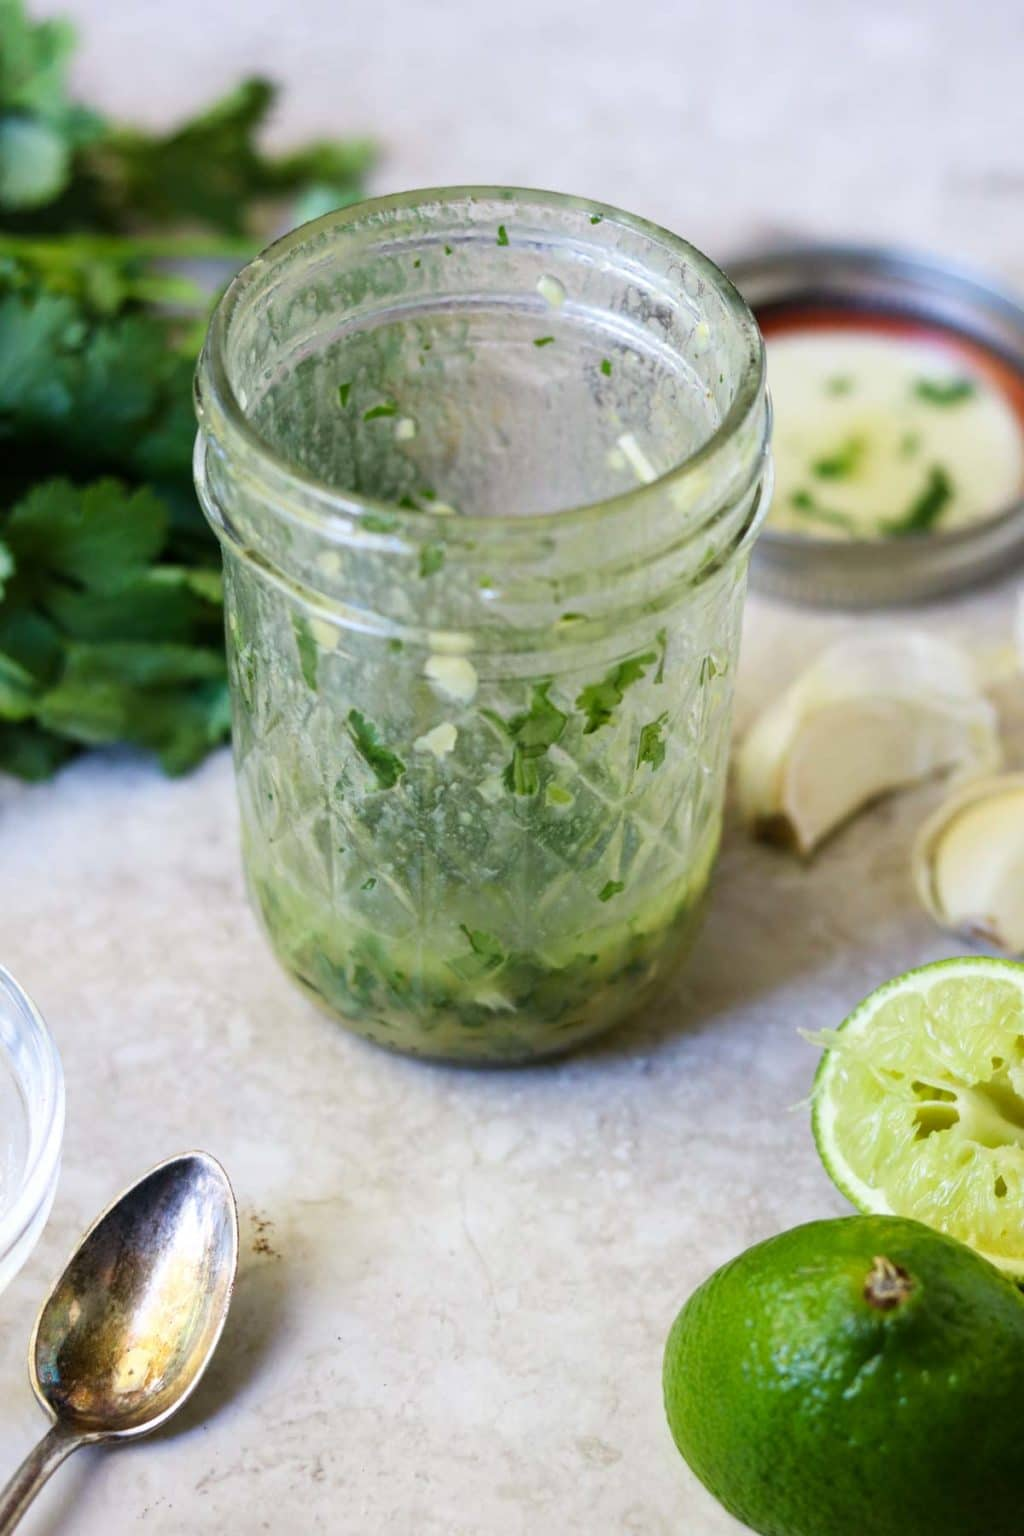 Cilantro Lime Vinaigrette in a mason jar with cilantro, garlic, and squeezed limes on the counter